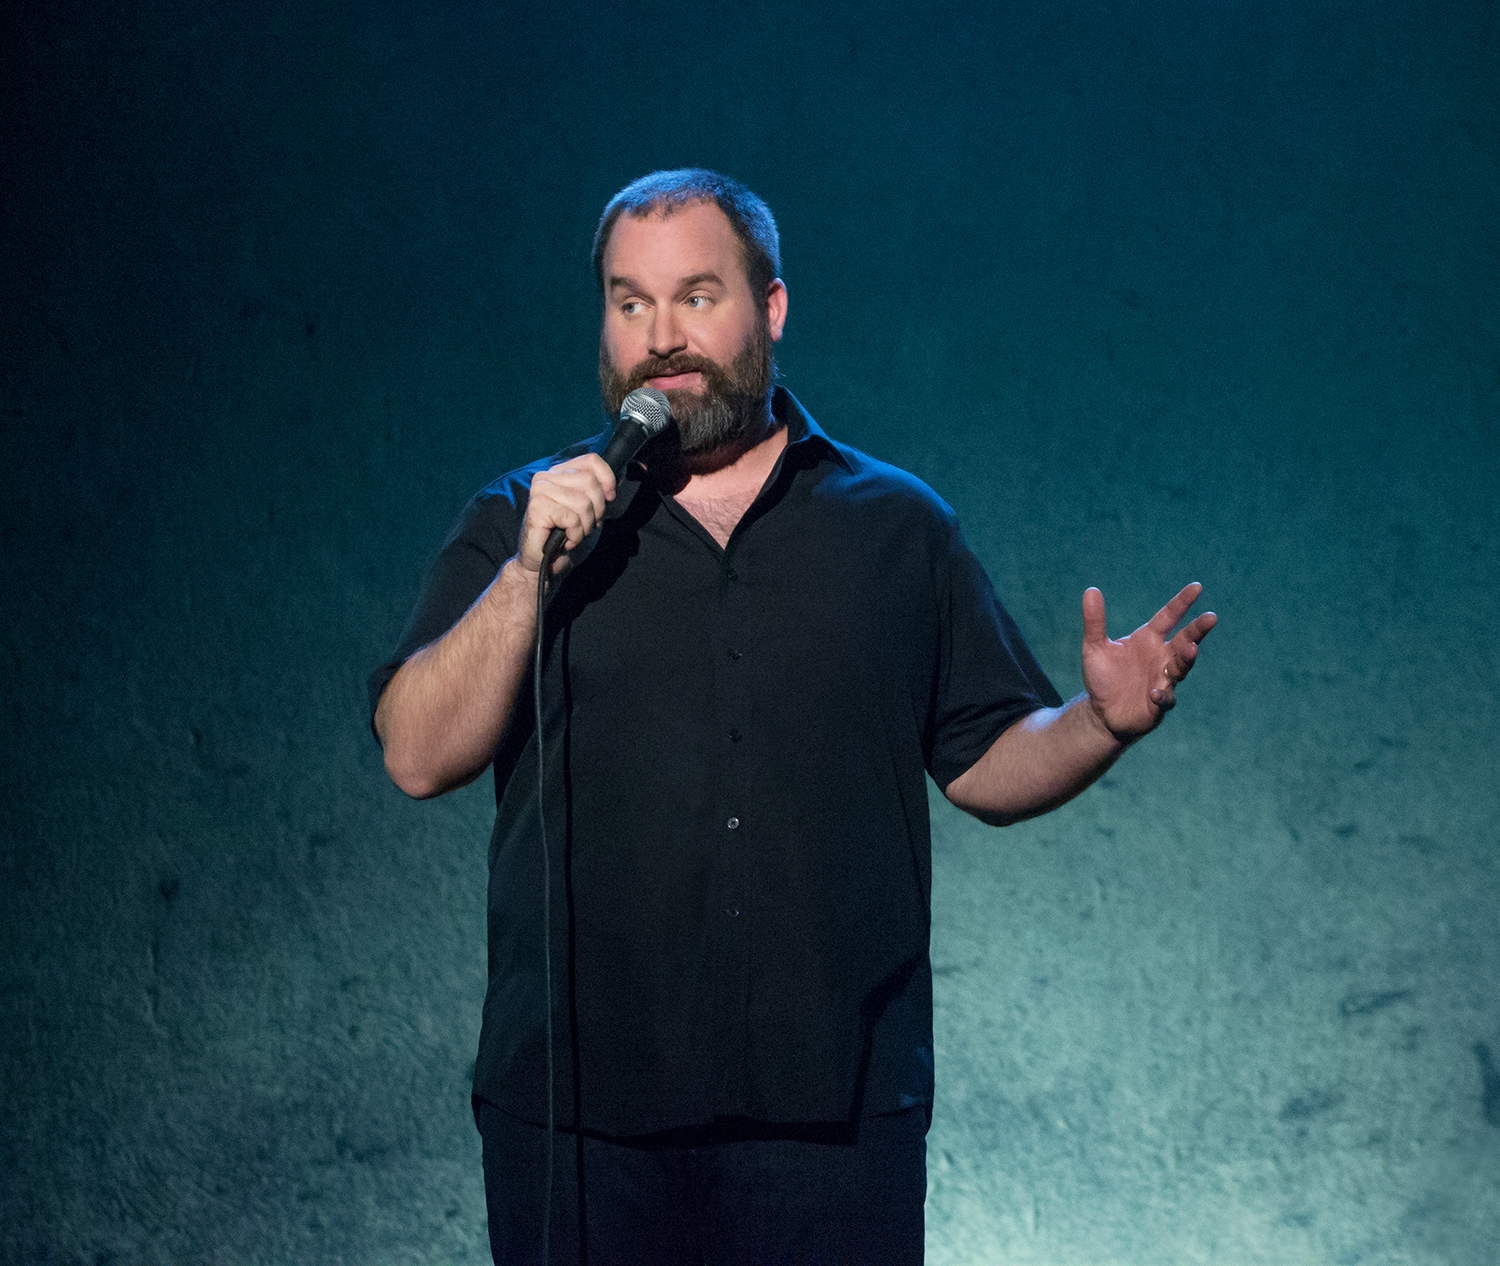 Tom Segura will perform at The Playhouse on Rodney Square this Friday, July 28, as part of his No Teeth No Entry Tour.